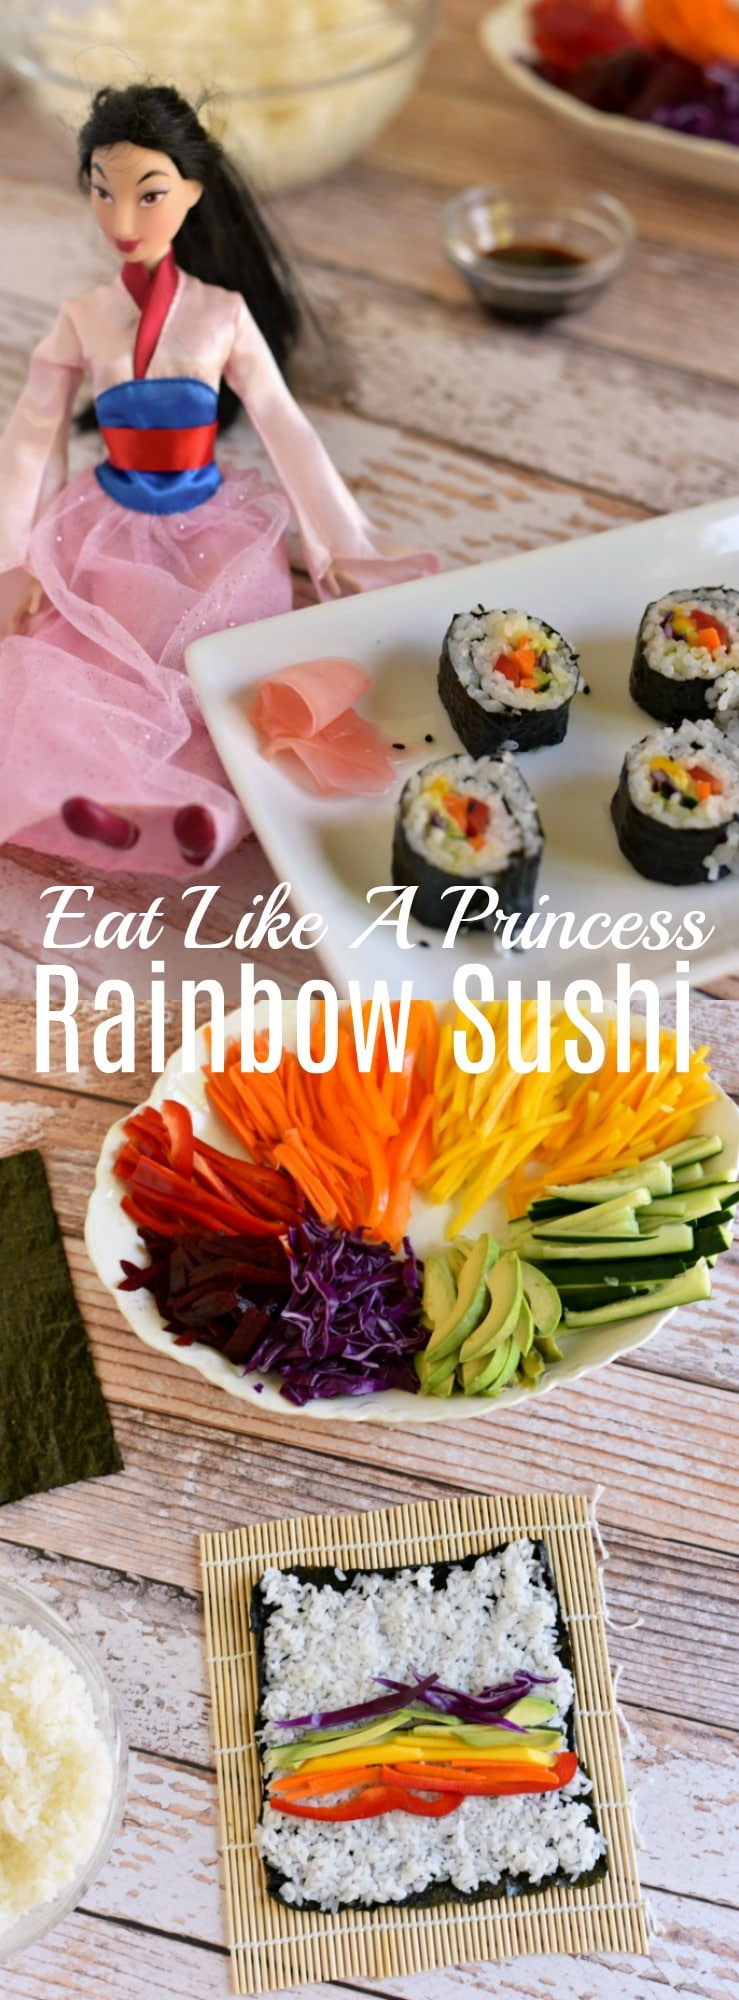 These easy veggie rainbow sushi rolls are perfect for kids! Eat Like A Princess - Mulan Inspired Recipe